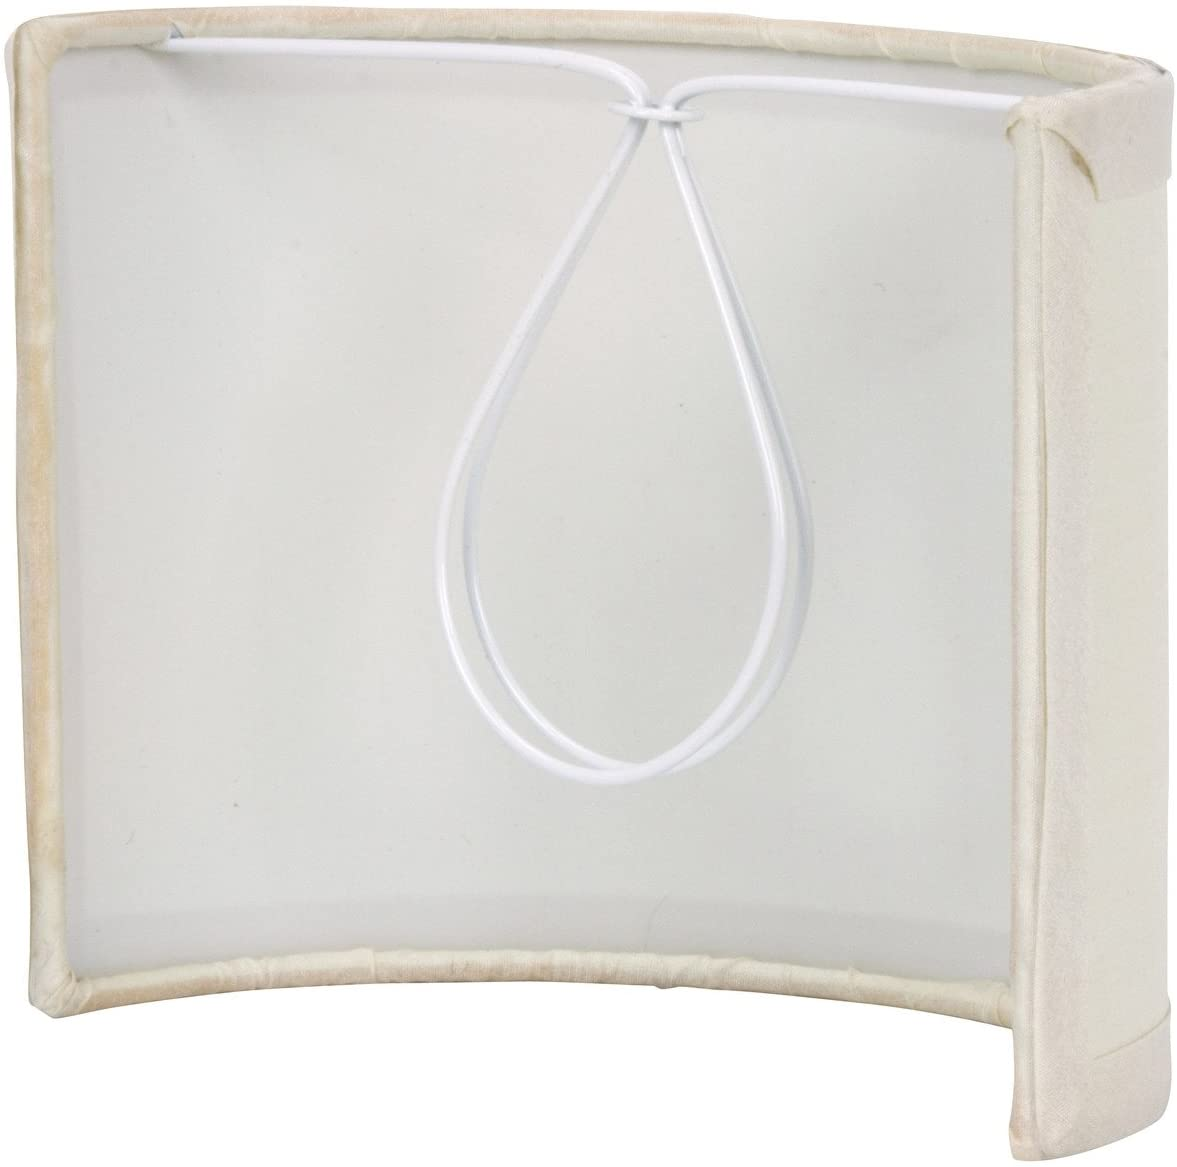 Upgradelights 5 Inch Tall Wall Sconce Clip On Shield Lamp Shade Chandelier Half Shade Light Fixture Replacement Shades